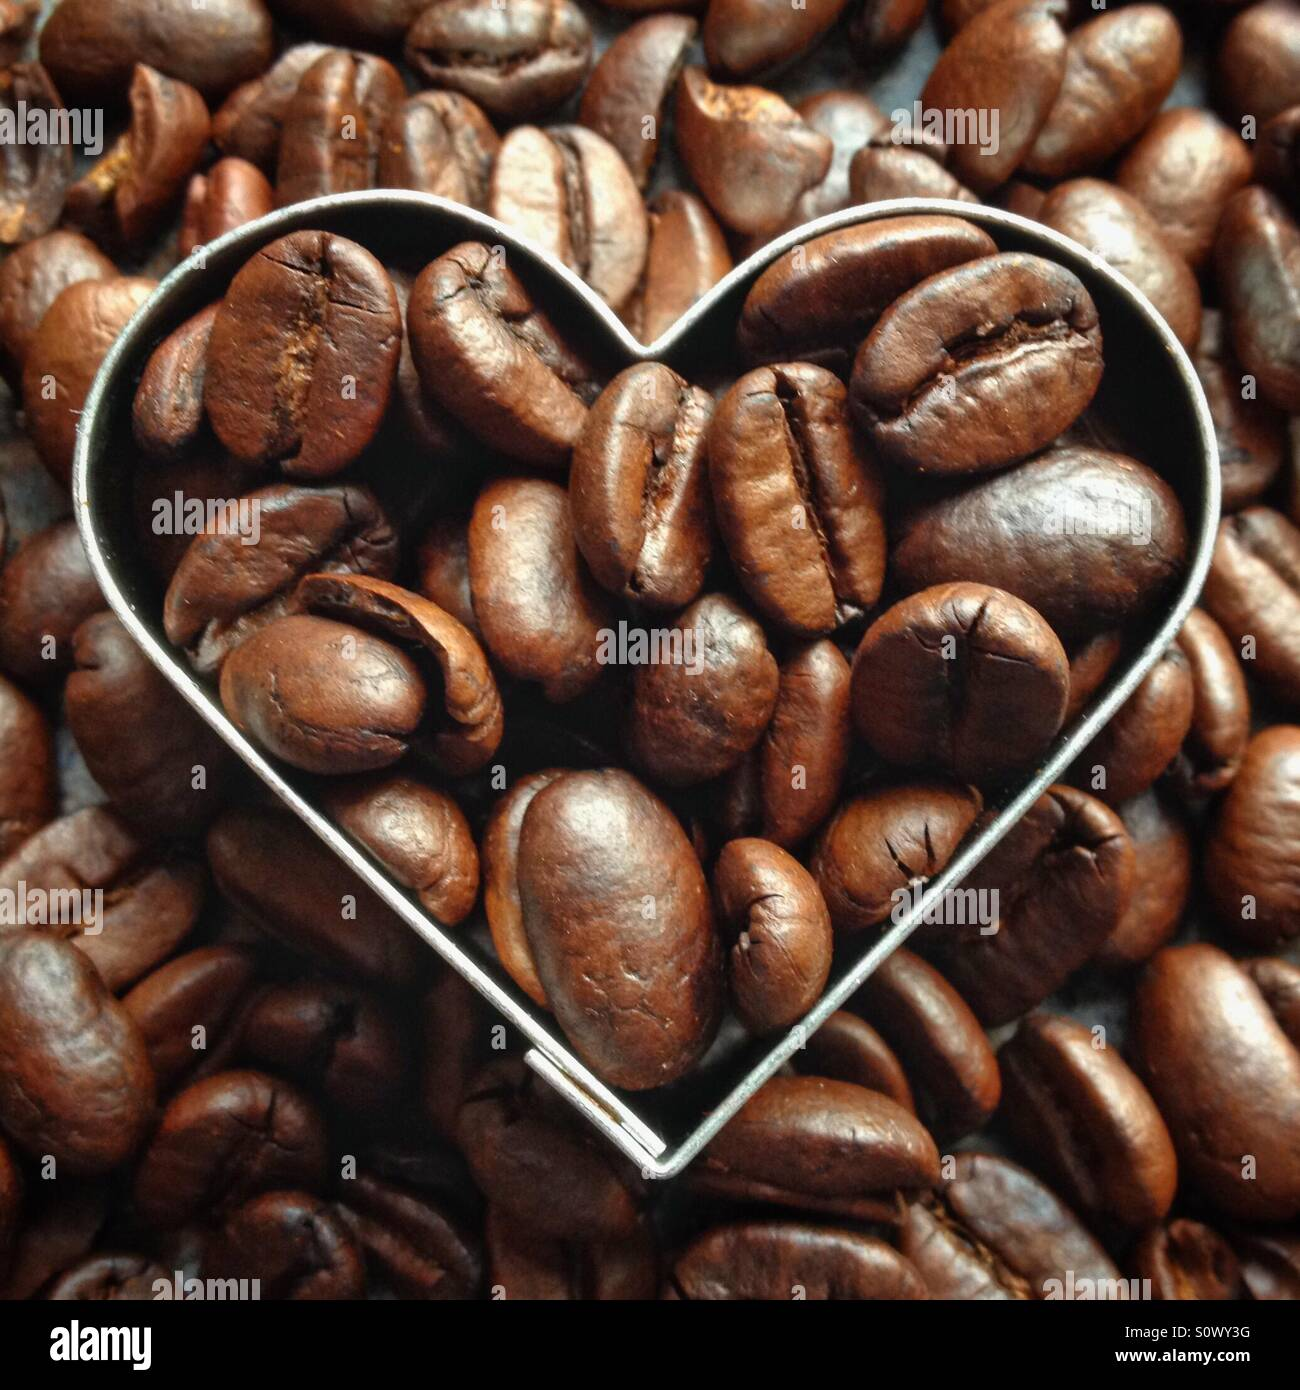 Love coffee - Stock Image